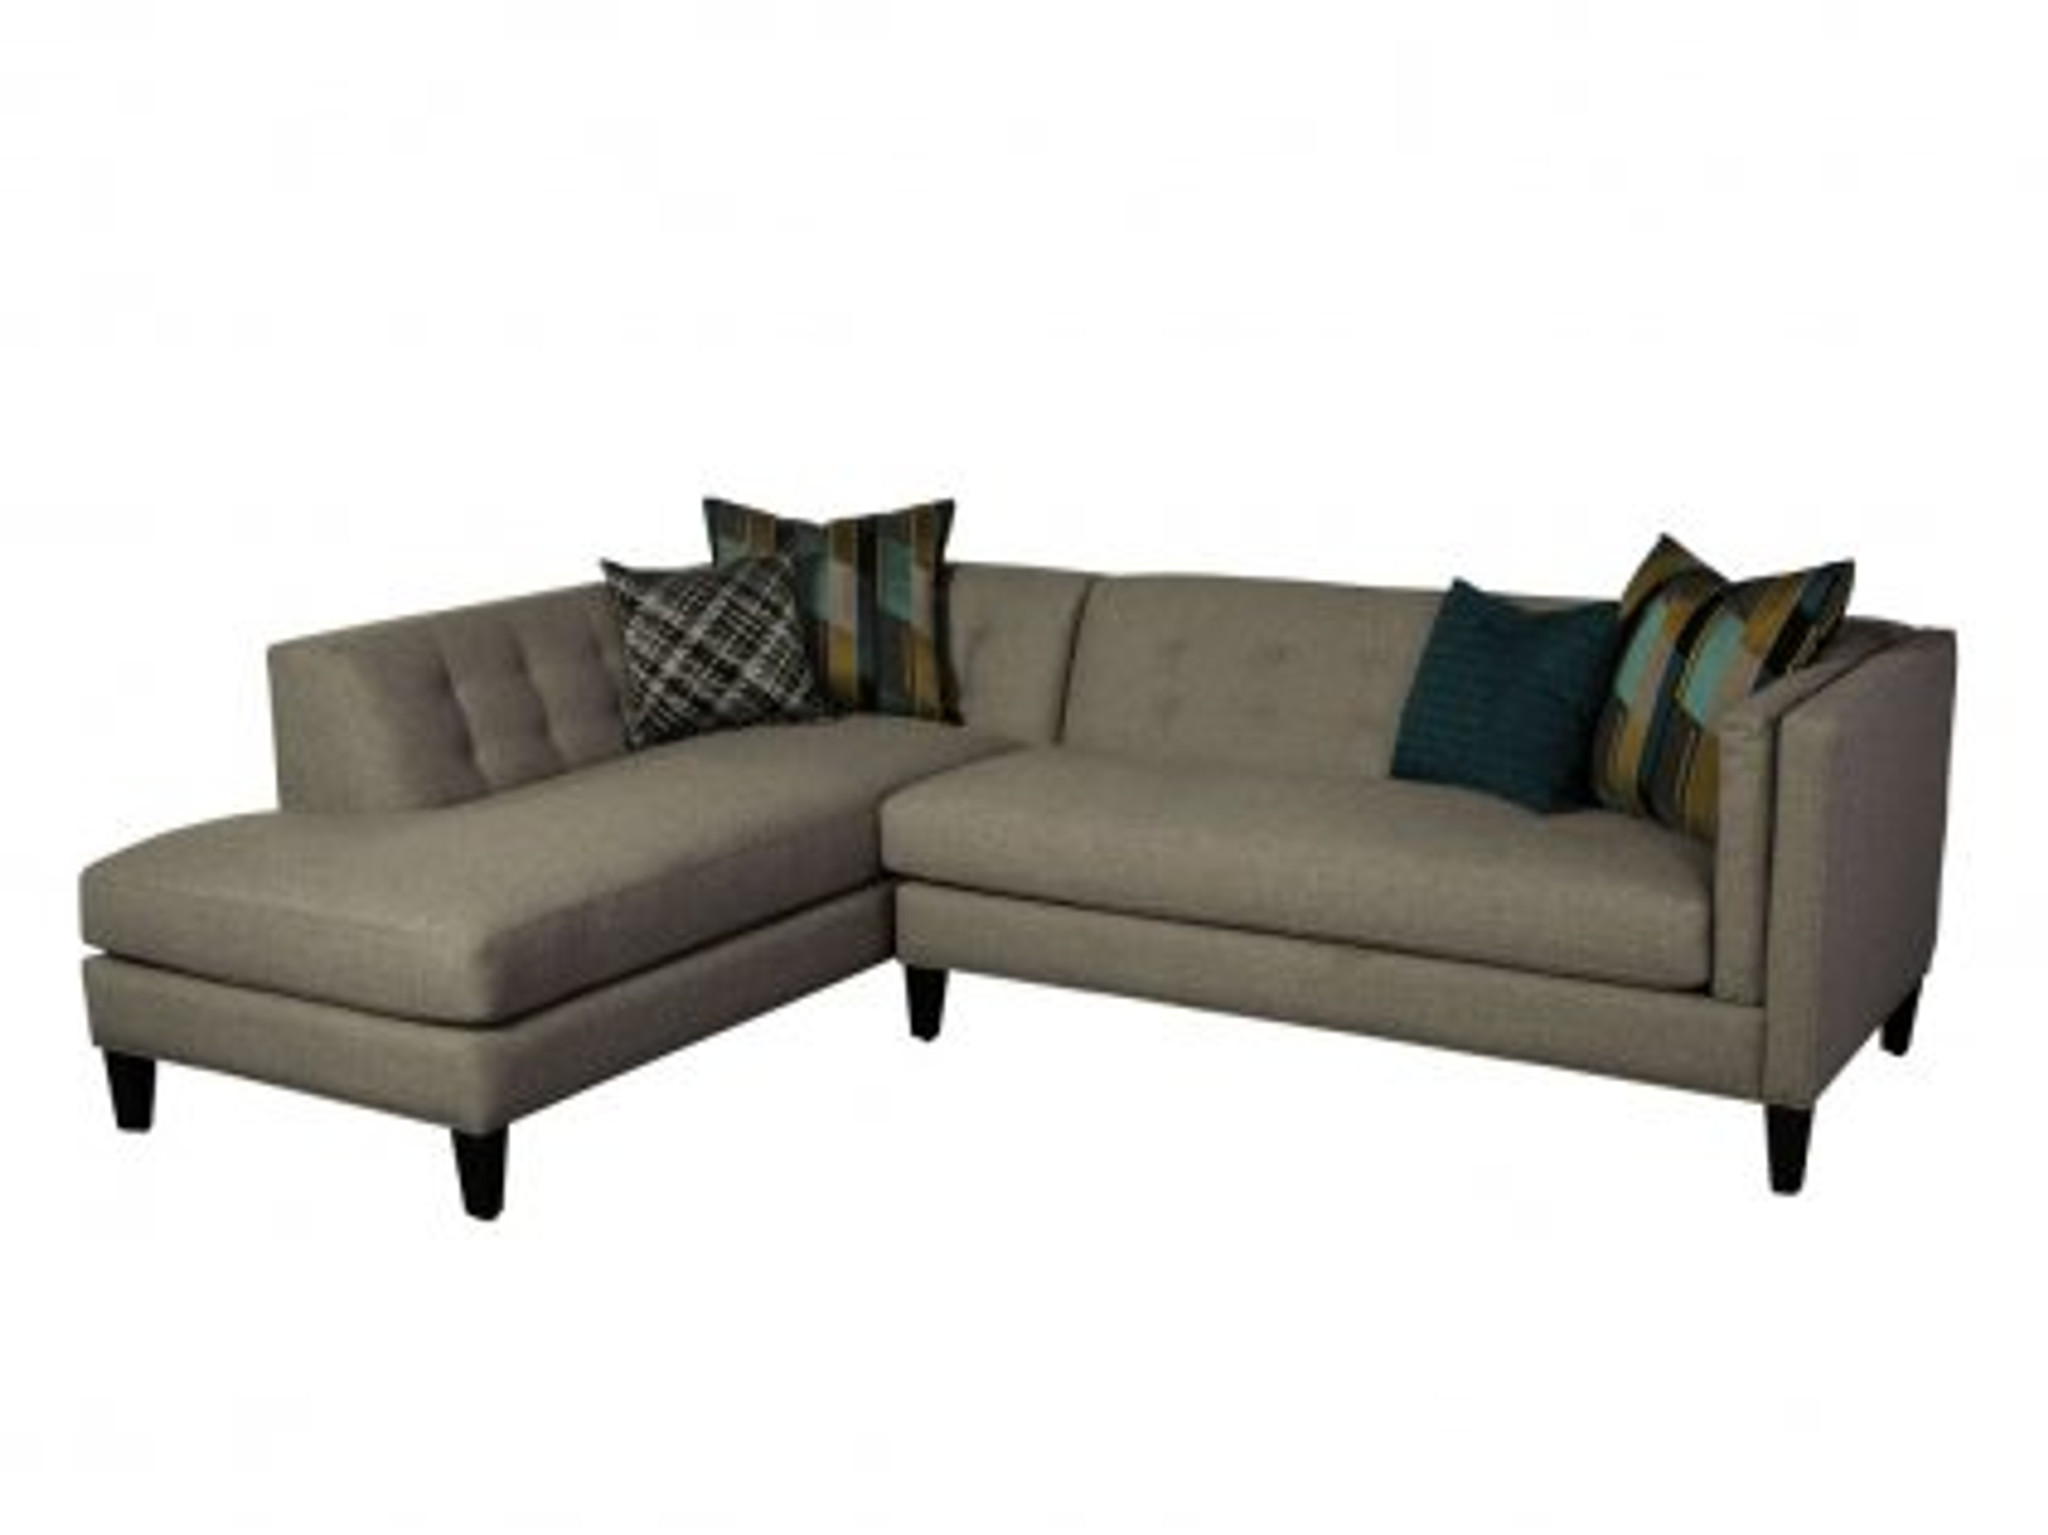 Fine Sectional Roys Furniture Chicago Lincoln Park Unemploymentrelief Wooden Chair Designs For Living Room Unemploymentrelieforg